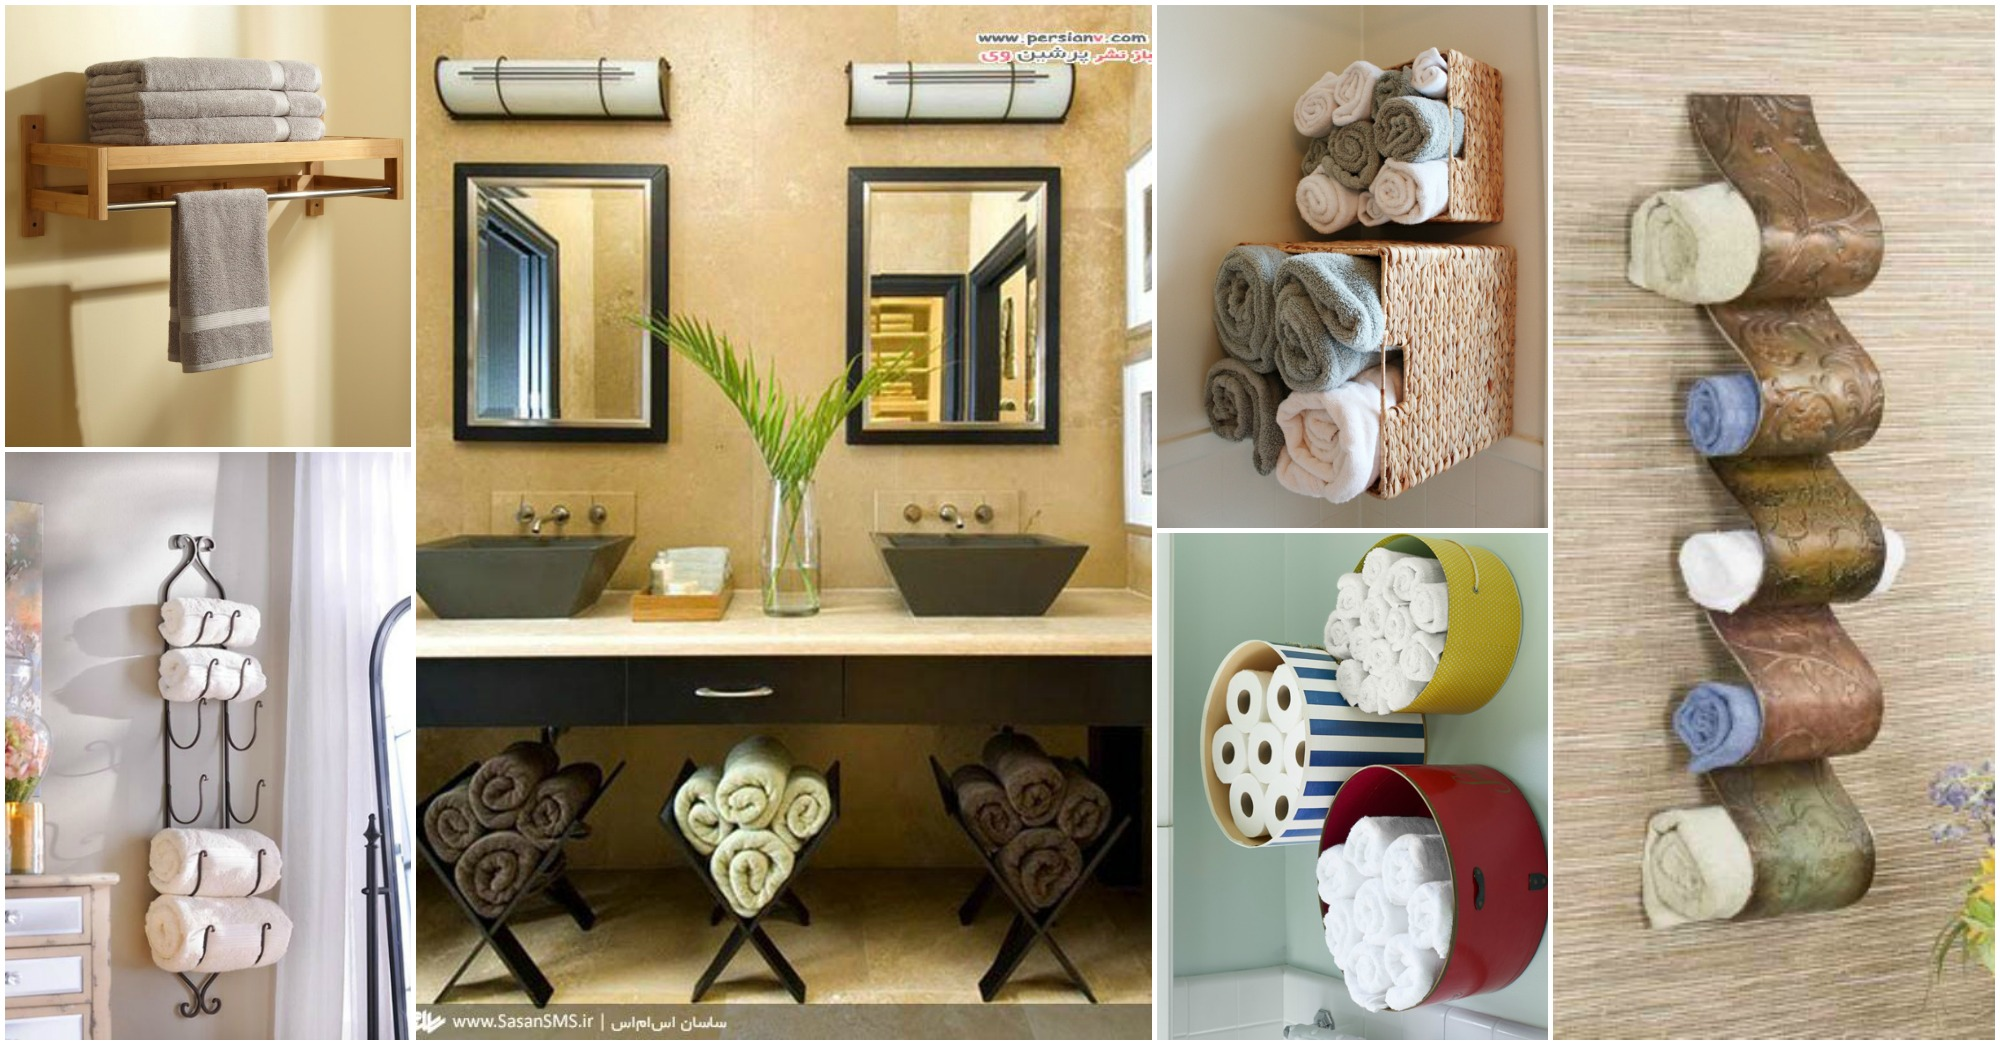 how to organize my kitchen wall tile designs 15+ fantastic bathroom towel storage ideas